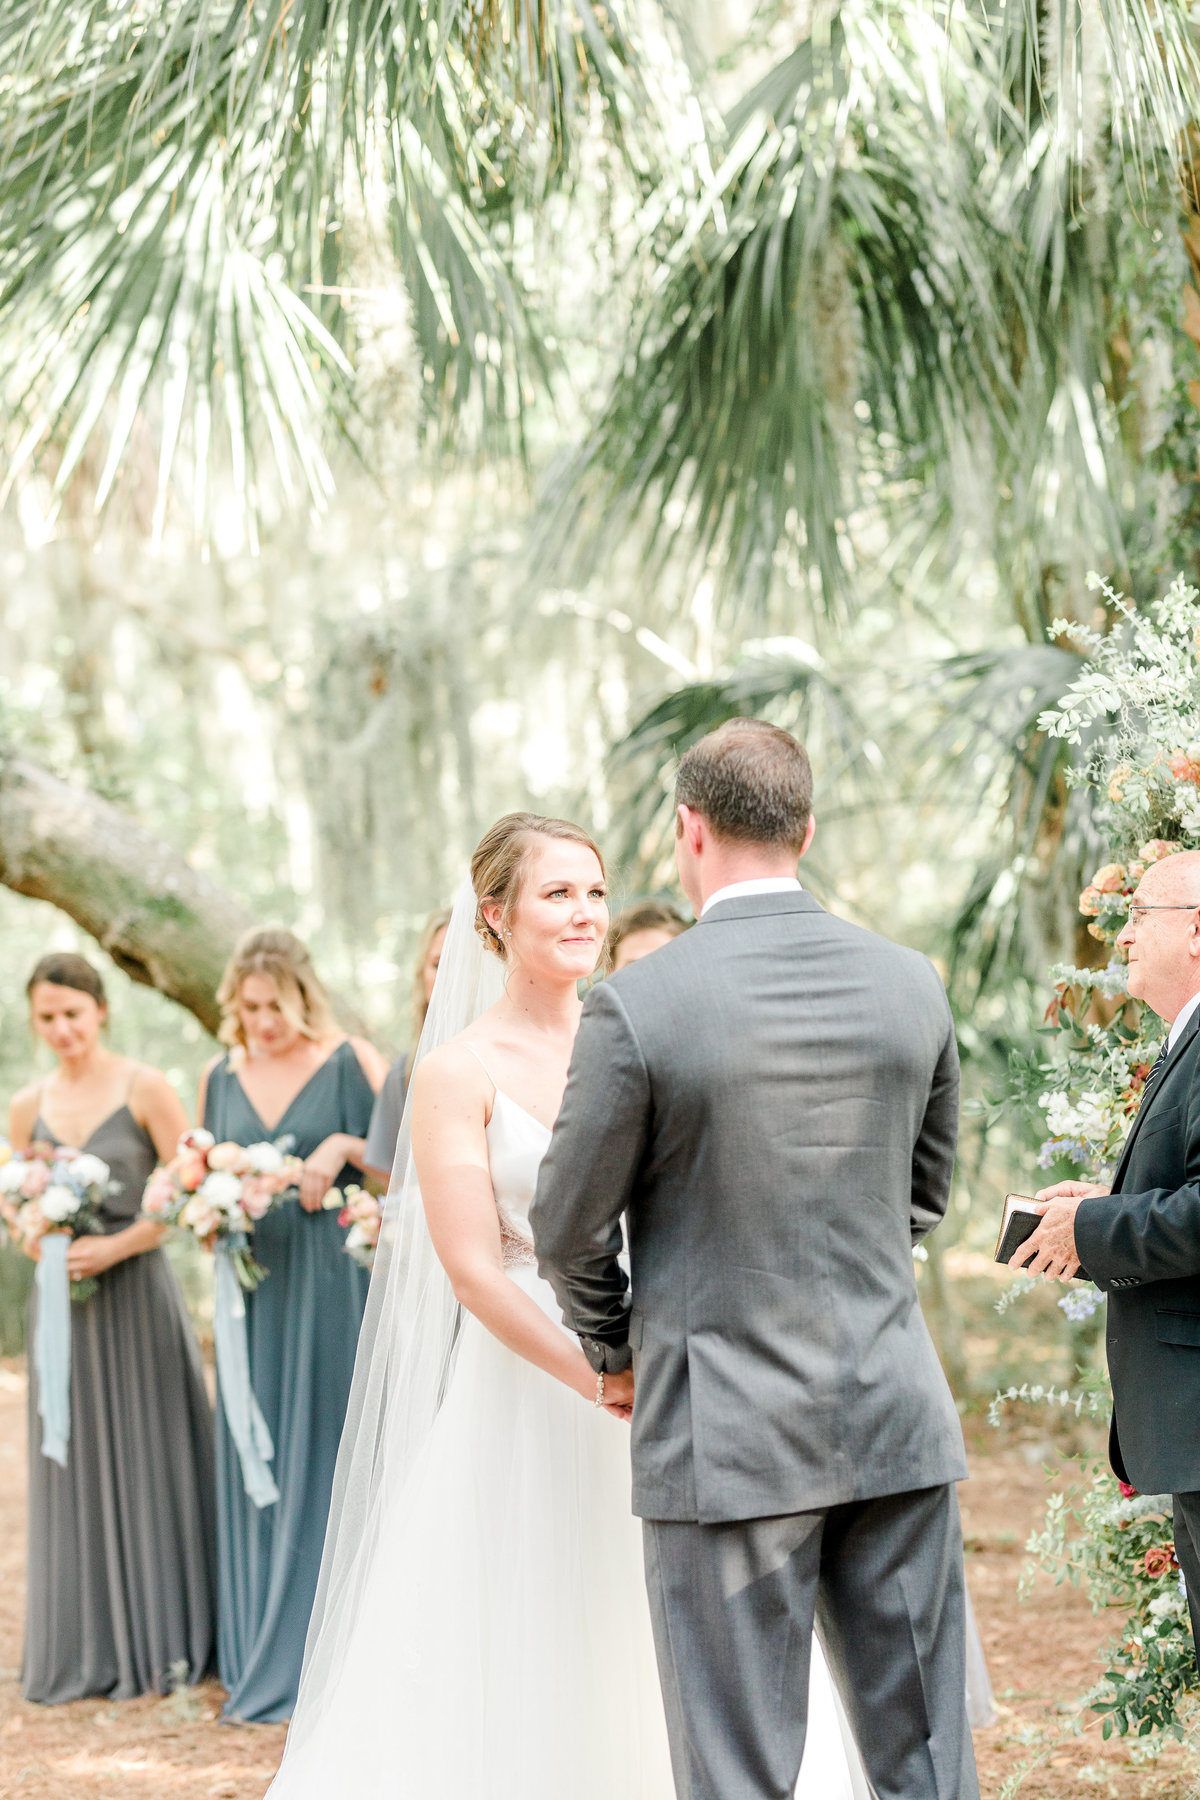 Walkerslandingameliaislandwedding-6585